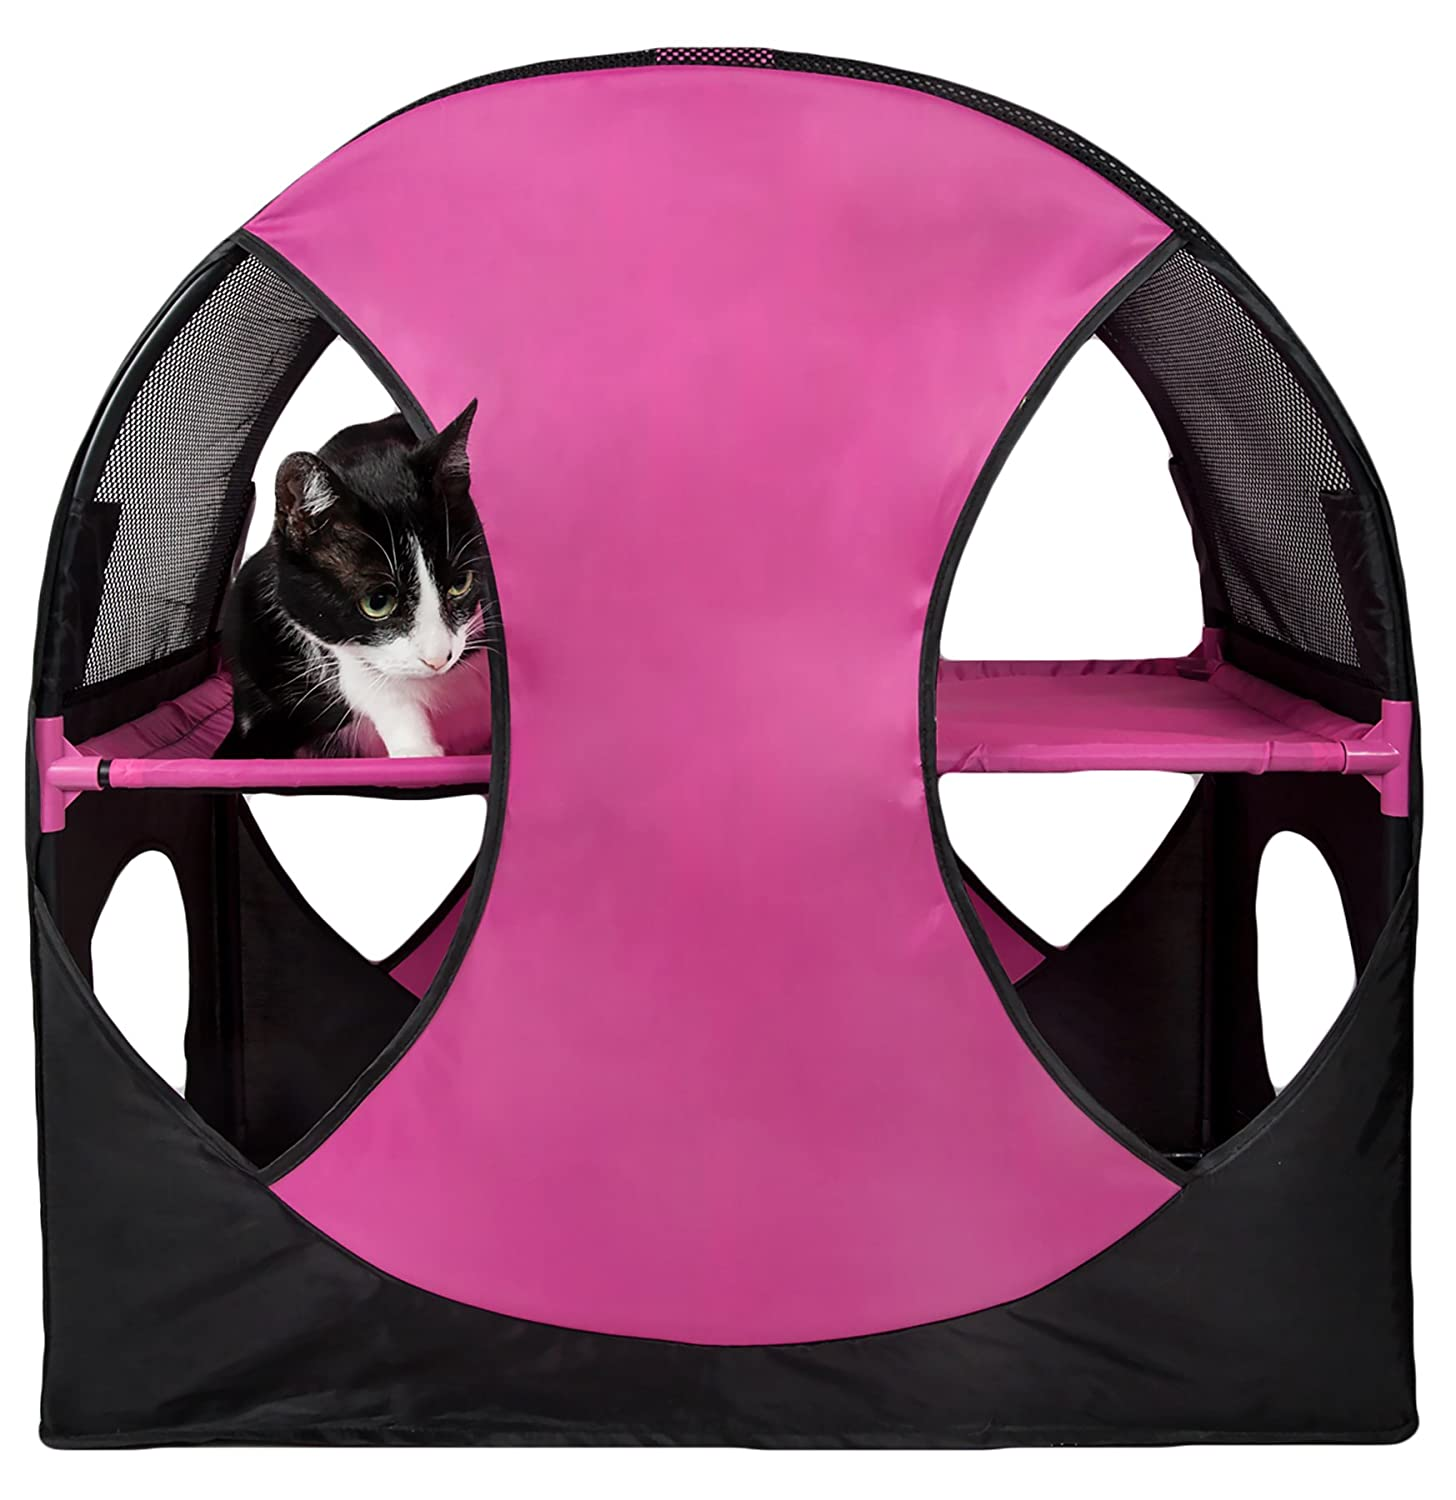 PET LIFE 'Kitty-Play' Collapsible Travel Interactive Kitty Cat Tree Maze House Lounger Tunnel Lounge, One Size, Pink and Black